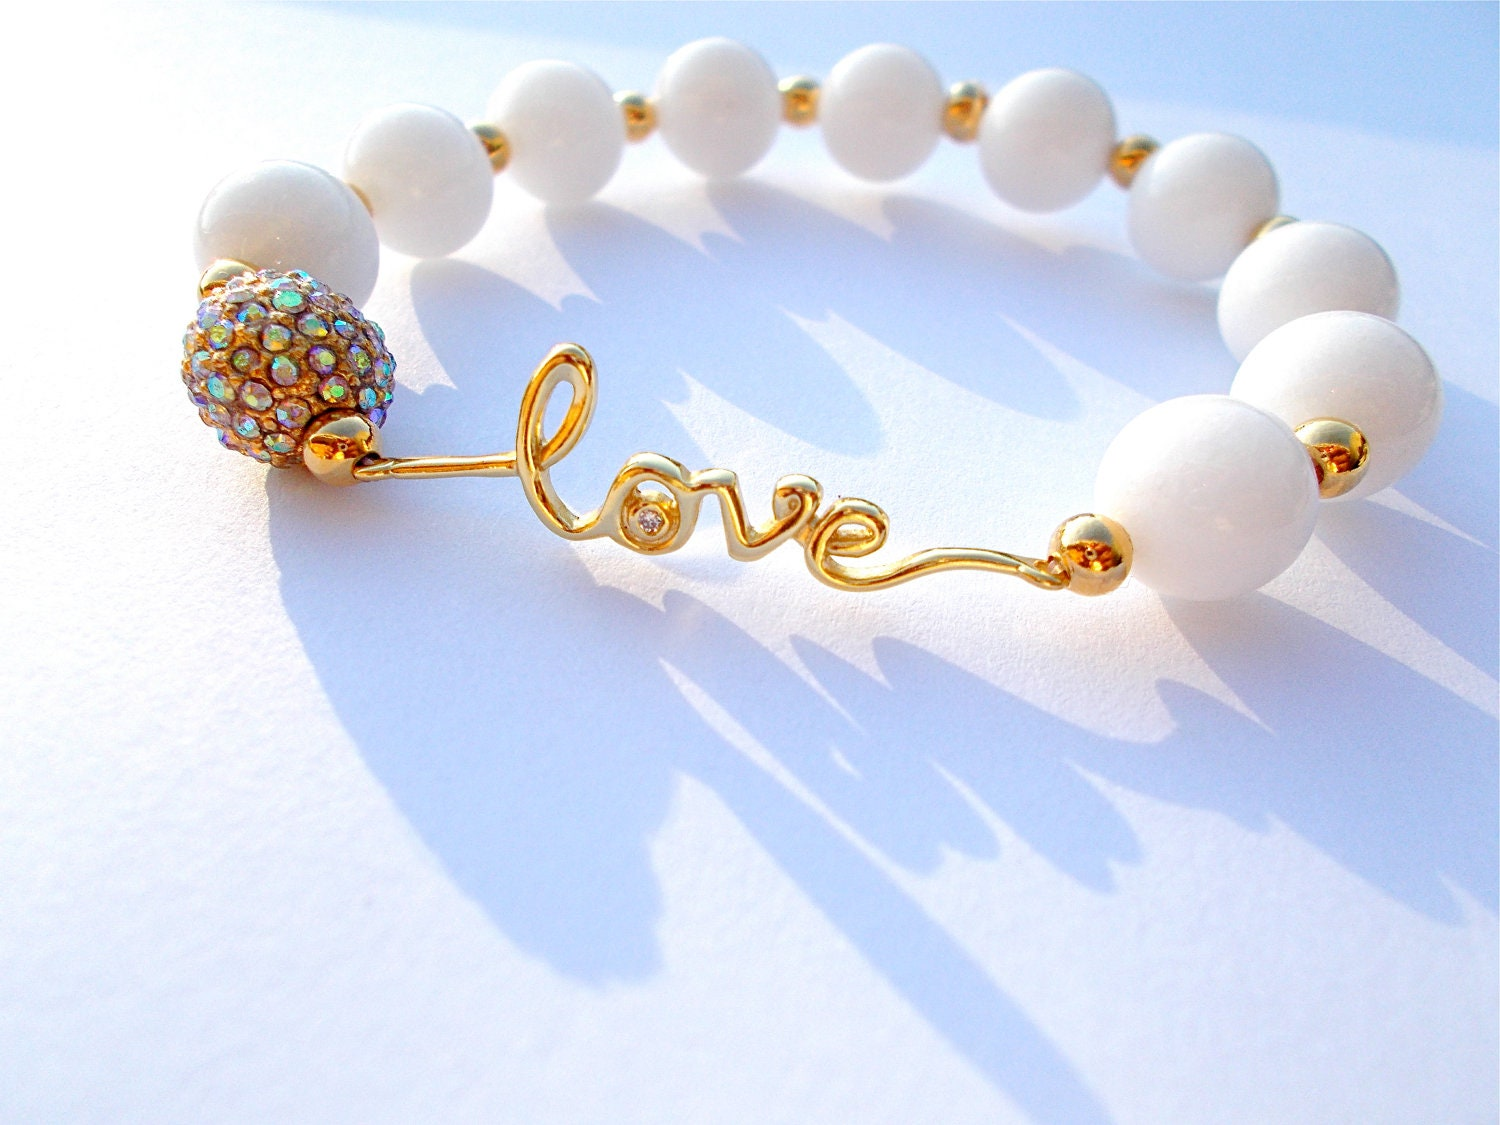 Love bracelet, Bridal Jewelry, Purity bracelet, yellow gold, white jade